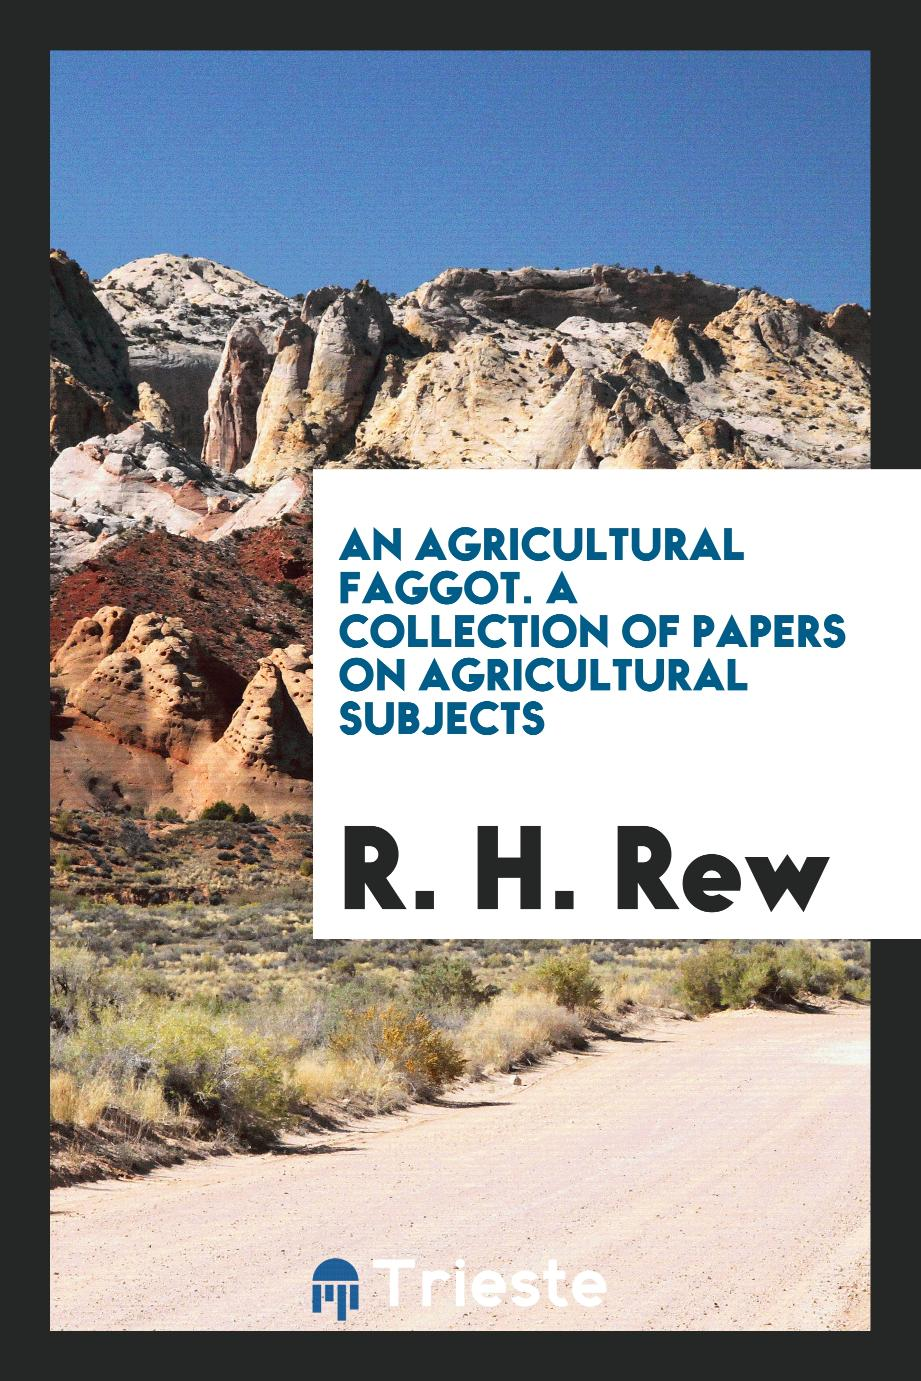 An agricultural faggot. A collection of papers on agricultural subjects